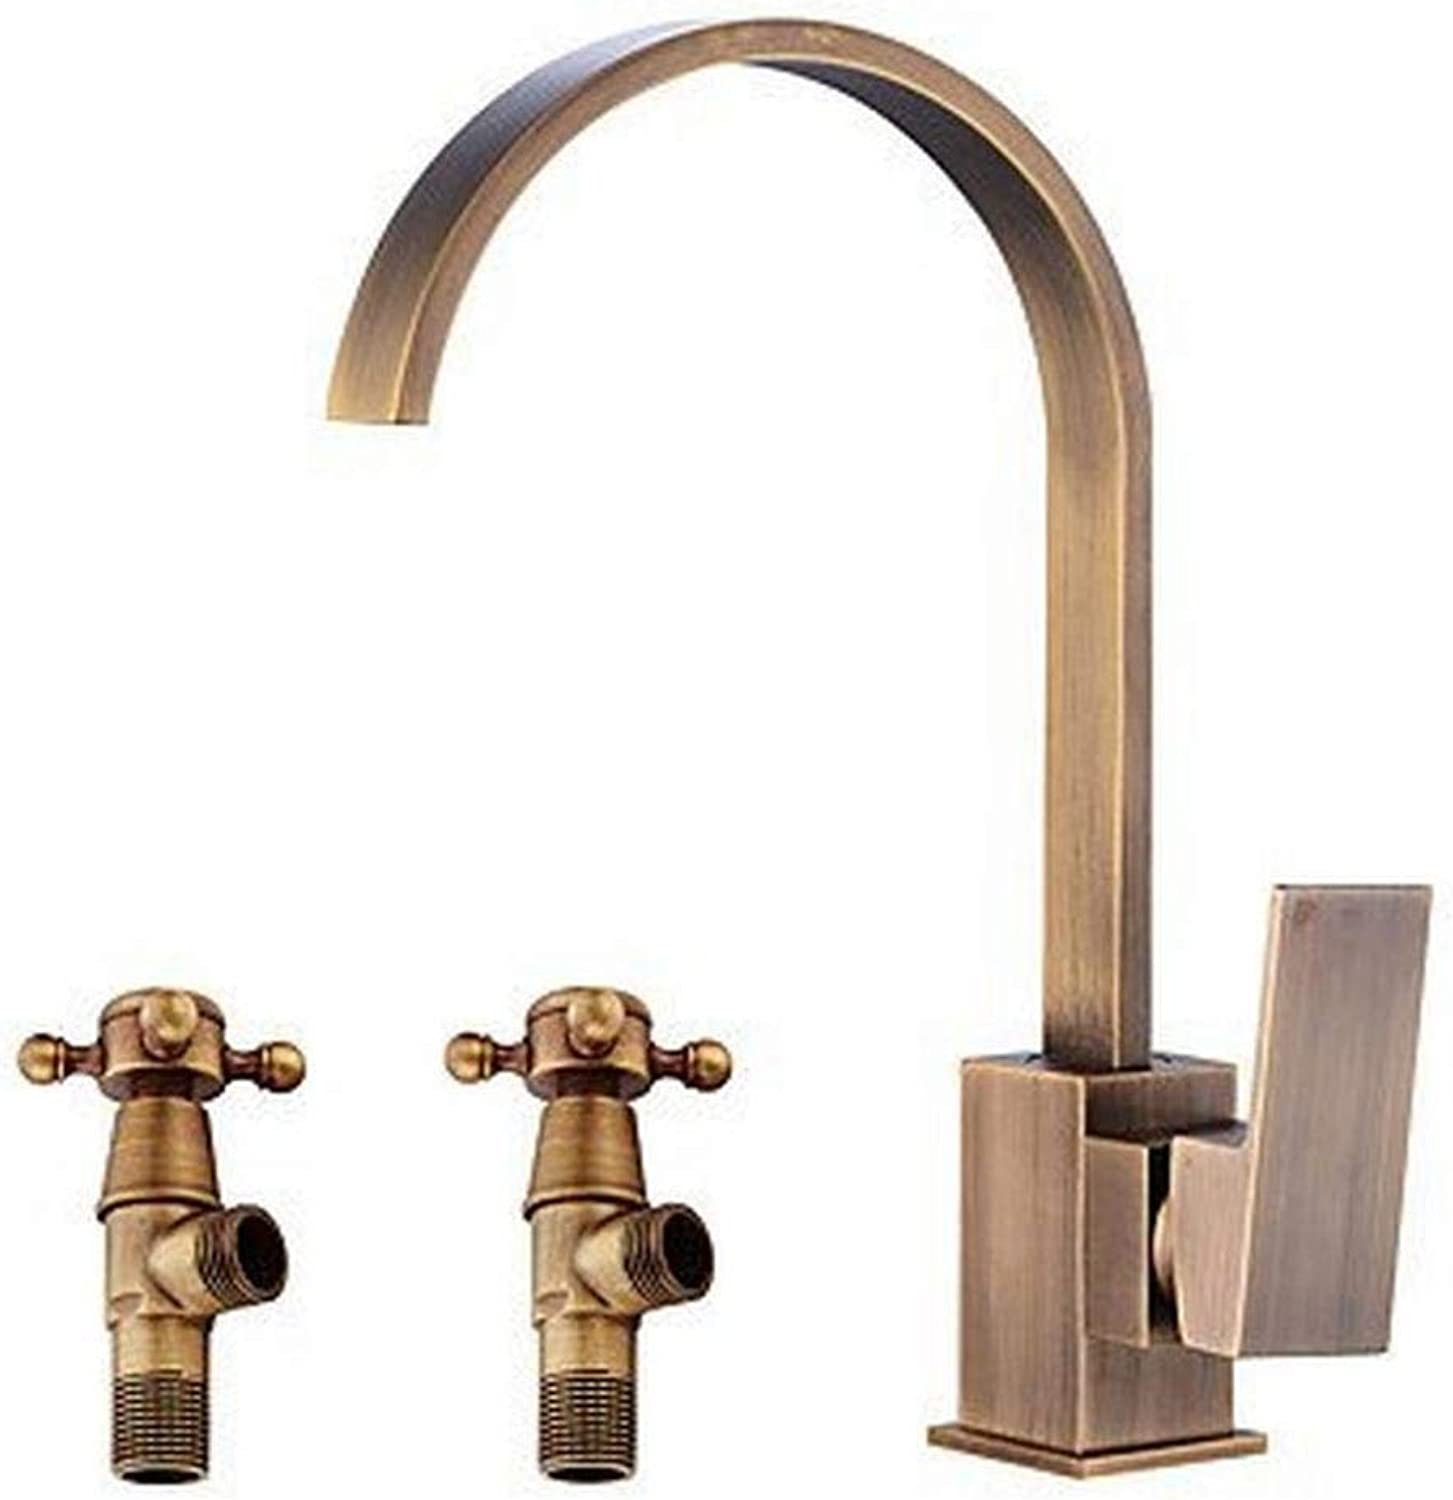 IG Widespread Ceramic Valve Single Handle One Hole Antique Copper, Bathroom Sink Faucet,A,One Size